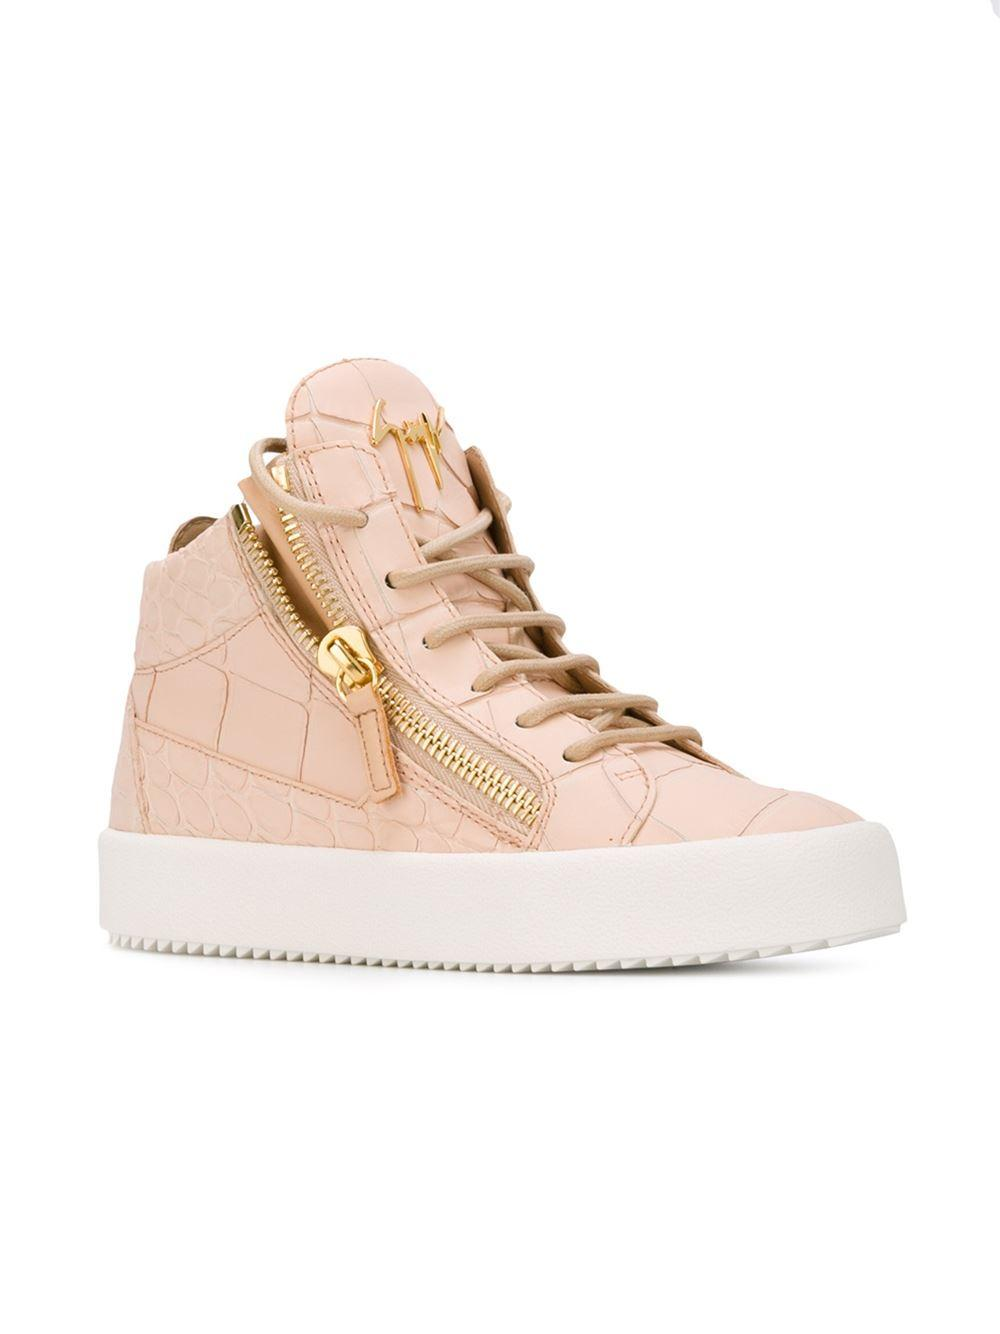 Giuseppe Zanotti Leather Zip Detail Hi-top Sneaker in Natural